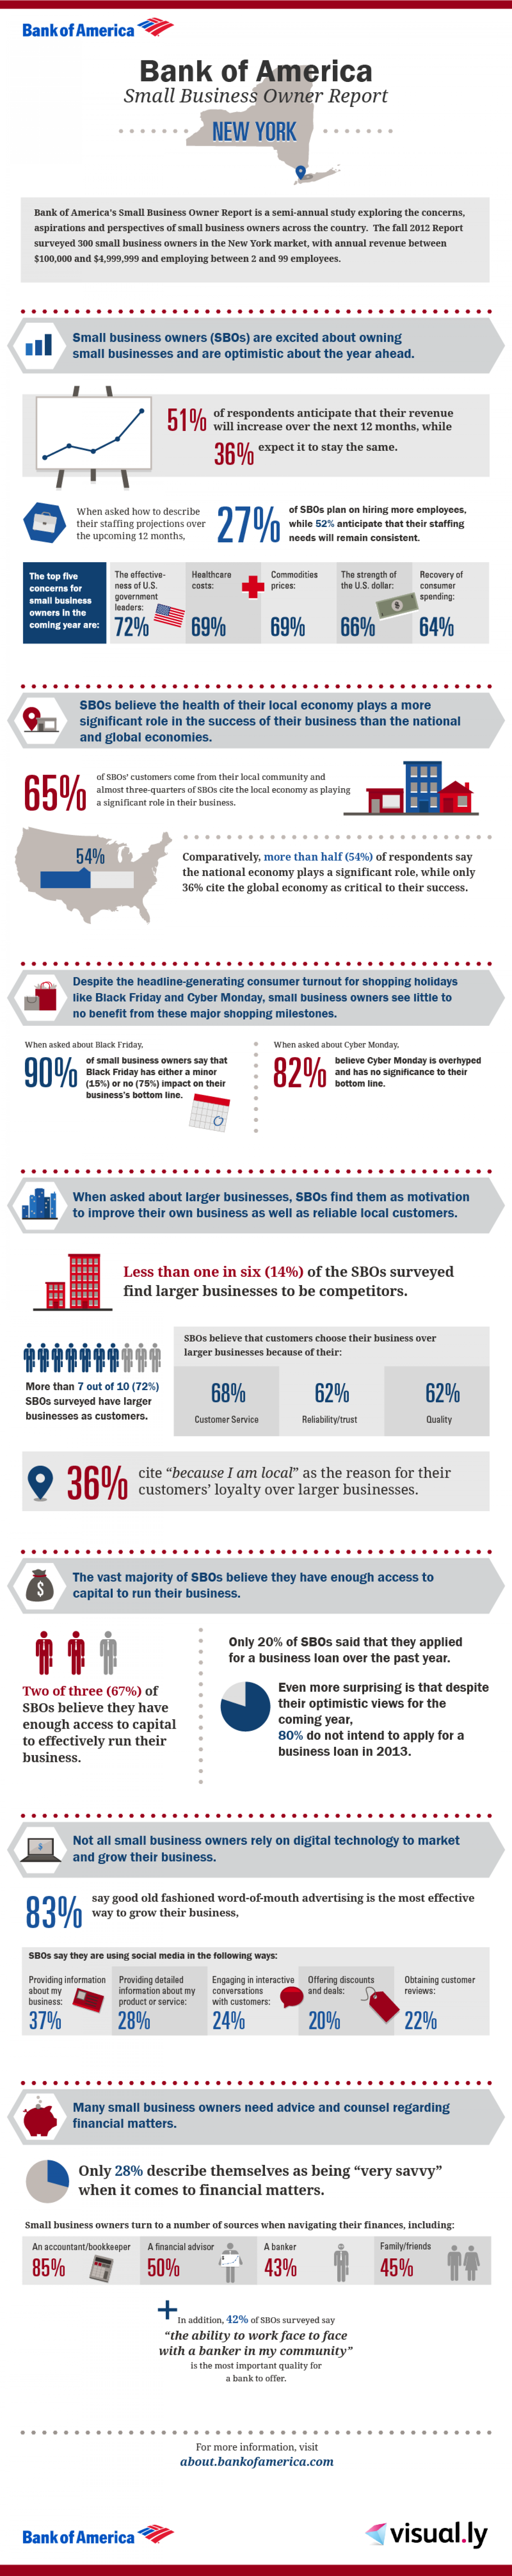 Bank of America Small Business Owner Report: NYC Local Breakdown Infographic